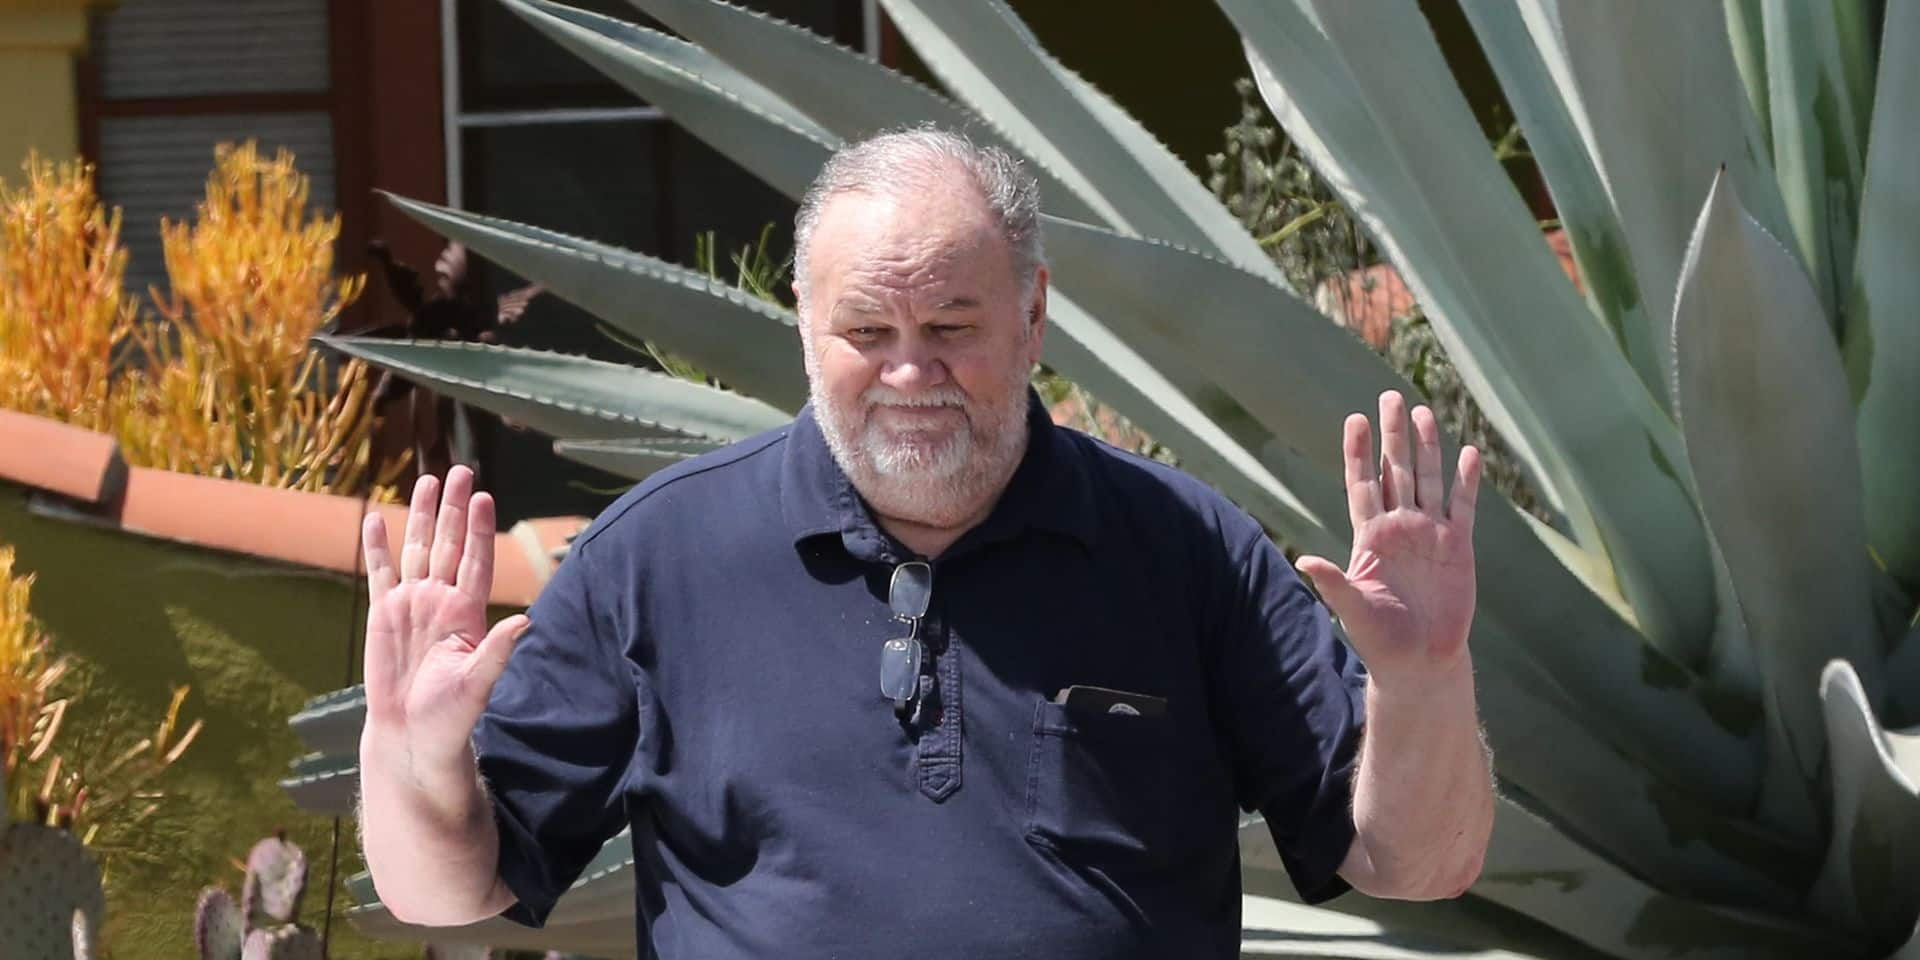 Meghan Markle's father thomas markle drops off flowers at her Meghan's mother Doria ragland home days before the wedding